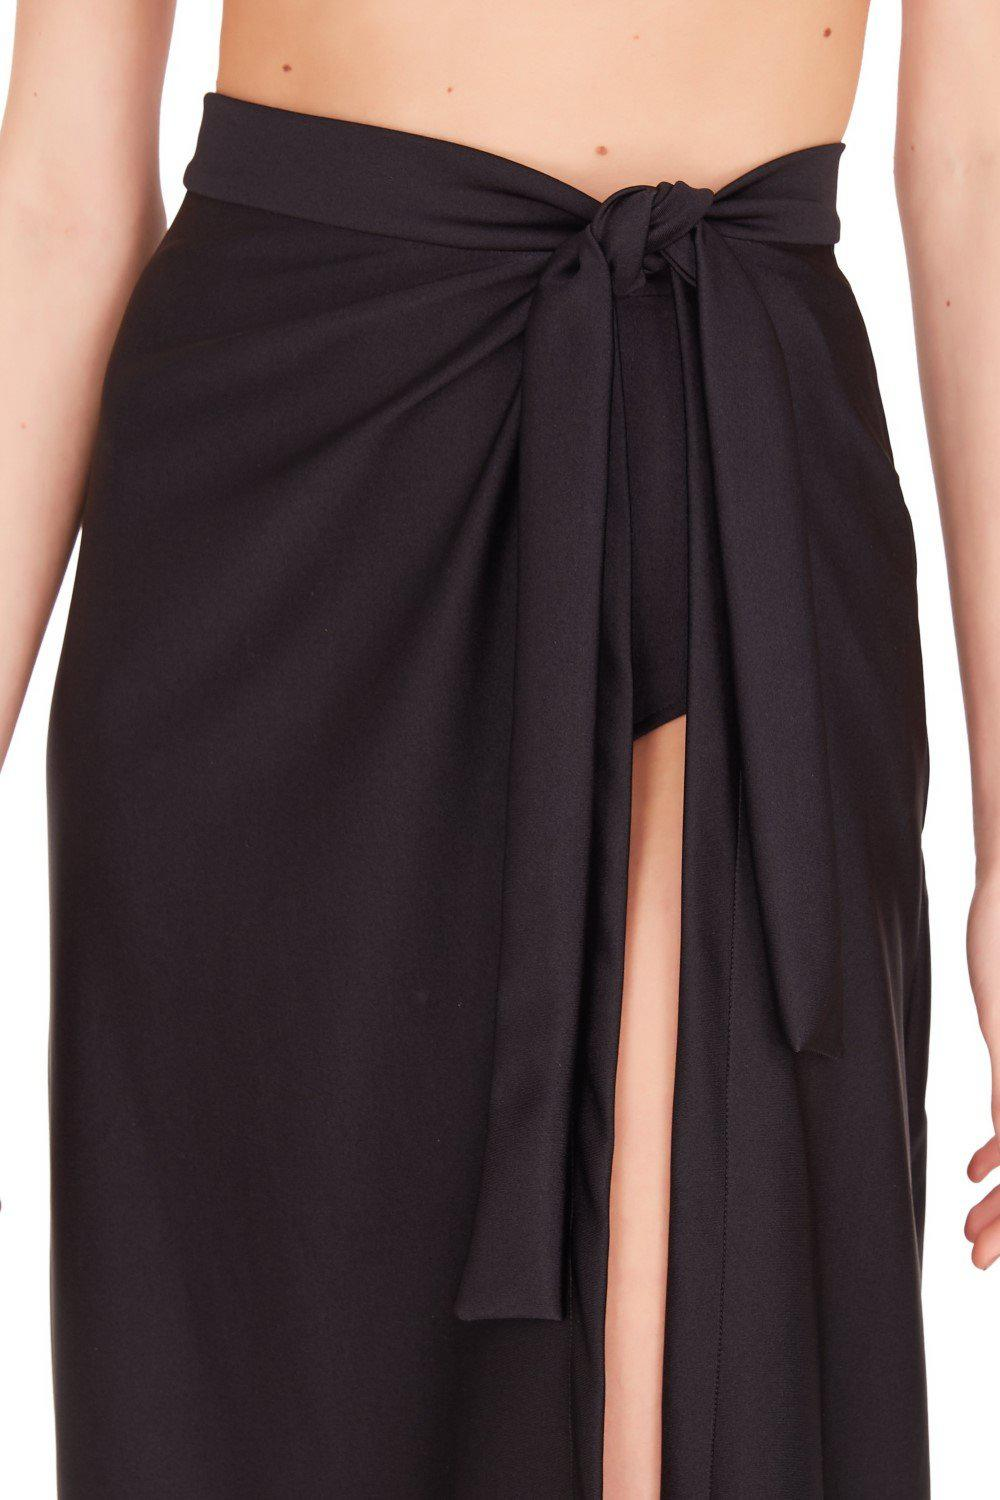 Fruits Exotiques Solid Pareo Skirt with Frills 4